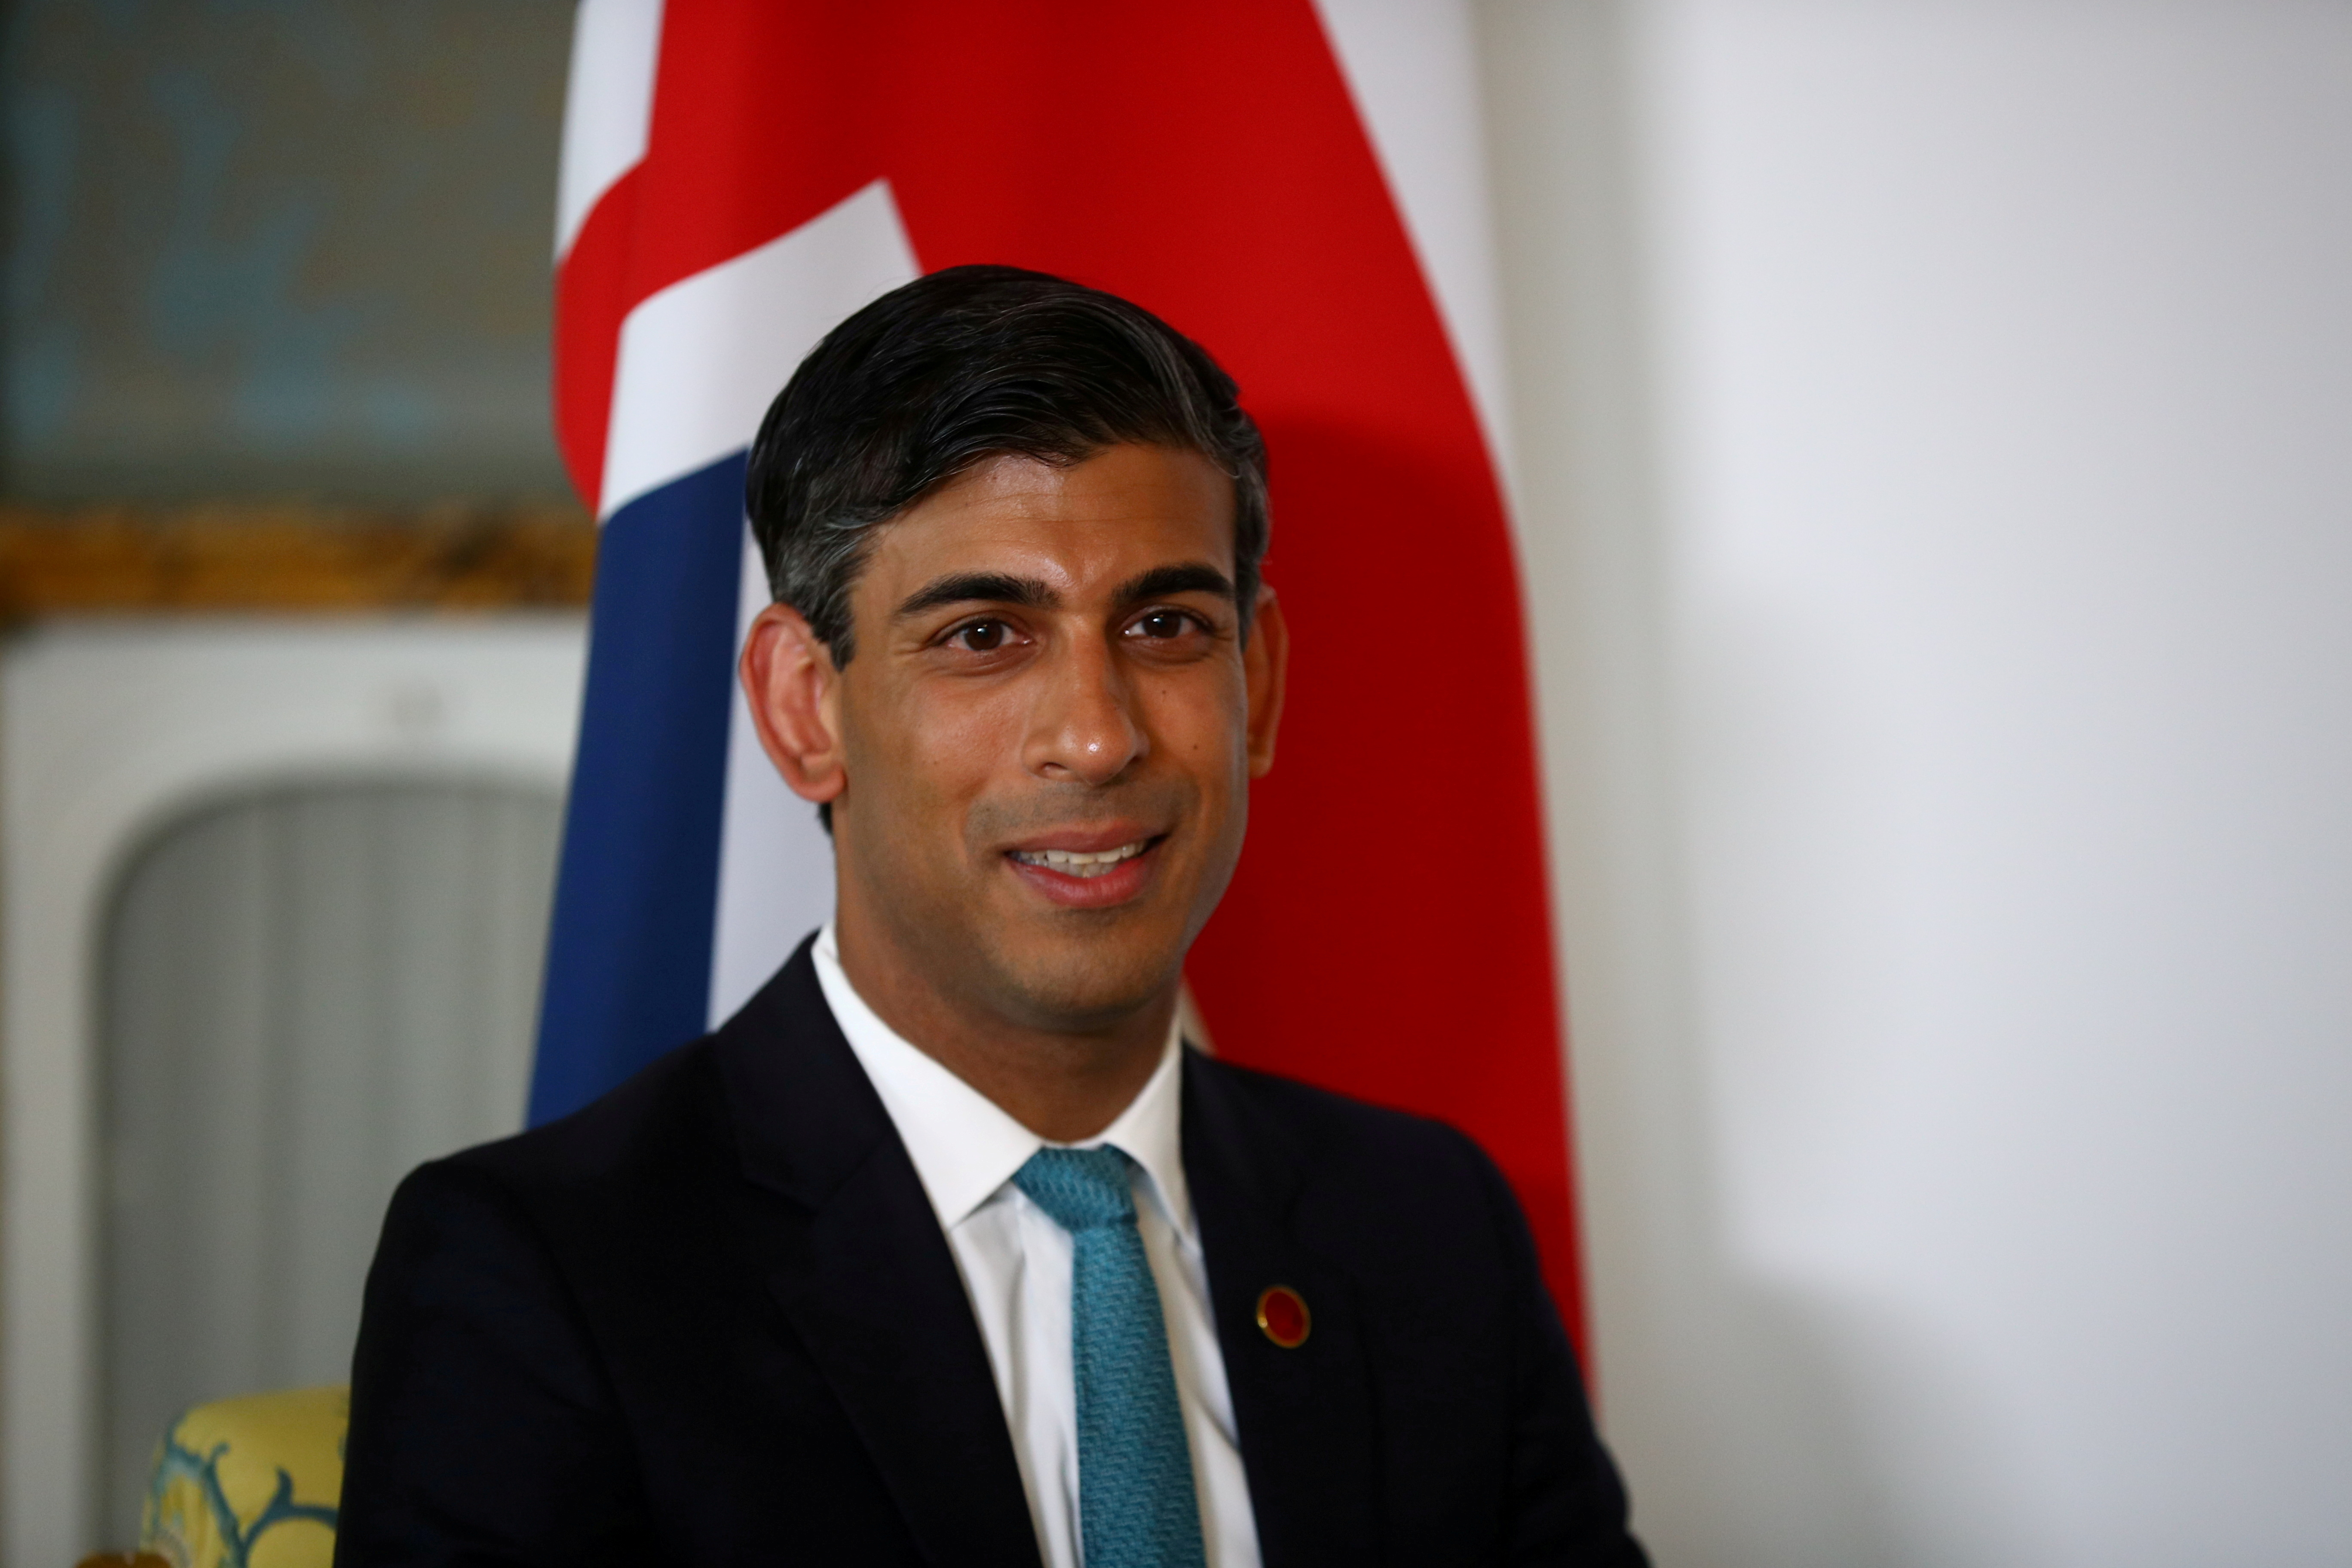 Britain's Chancellor of the Exchequer Rishi Sunak meets with U.S. Treasury Secretary Janet Yellen (not pictured), in London, Britain June 3, 2021. REUTERS/Hannah McKay/Pool/File Photo